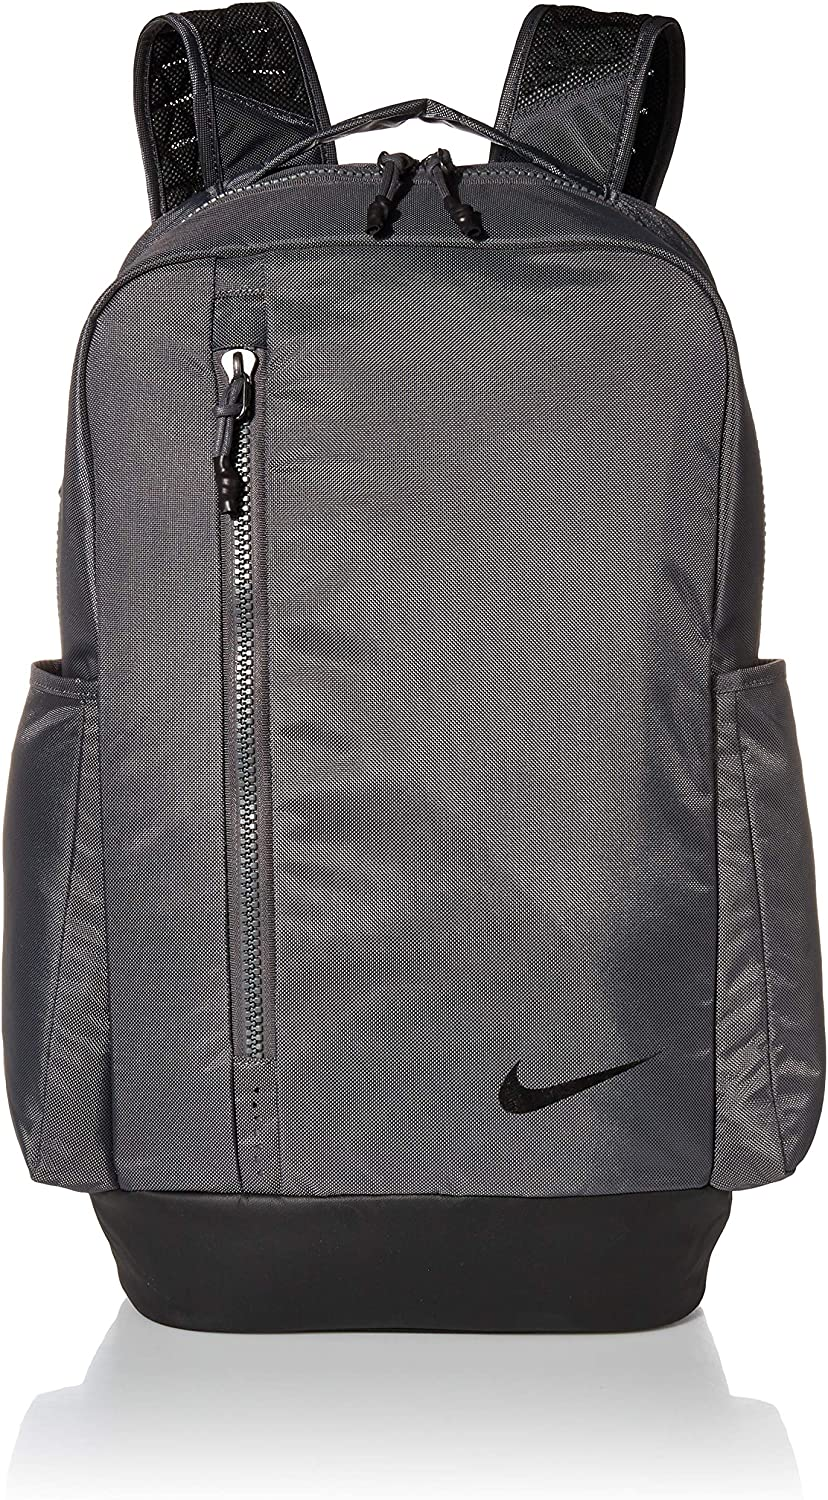 Nike unisex-adult Nike Vapor Power Backpack – 2.0